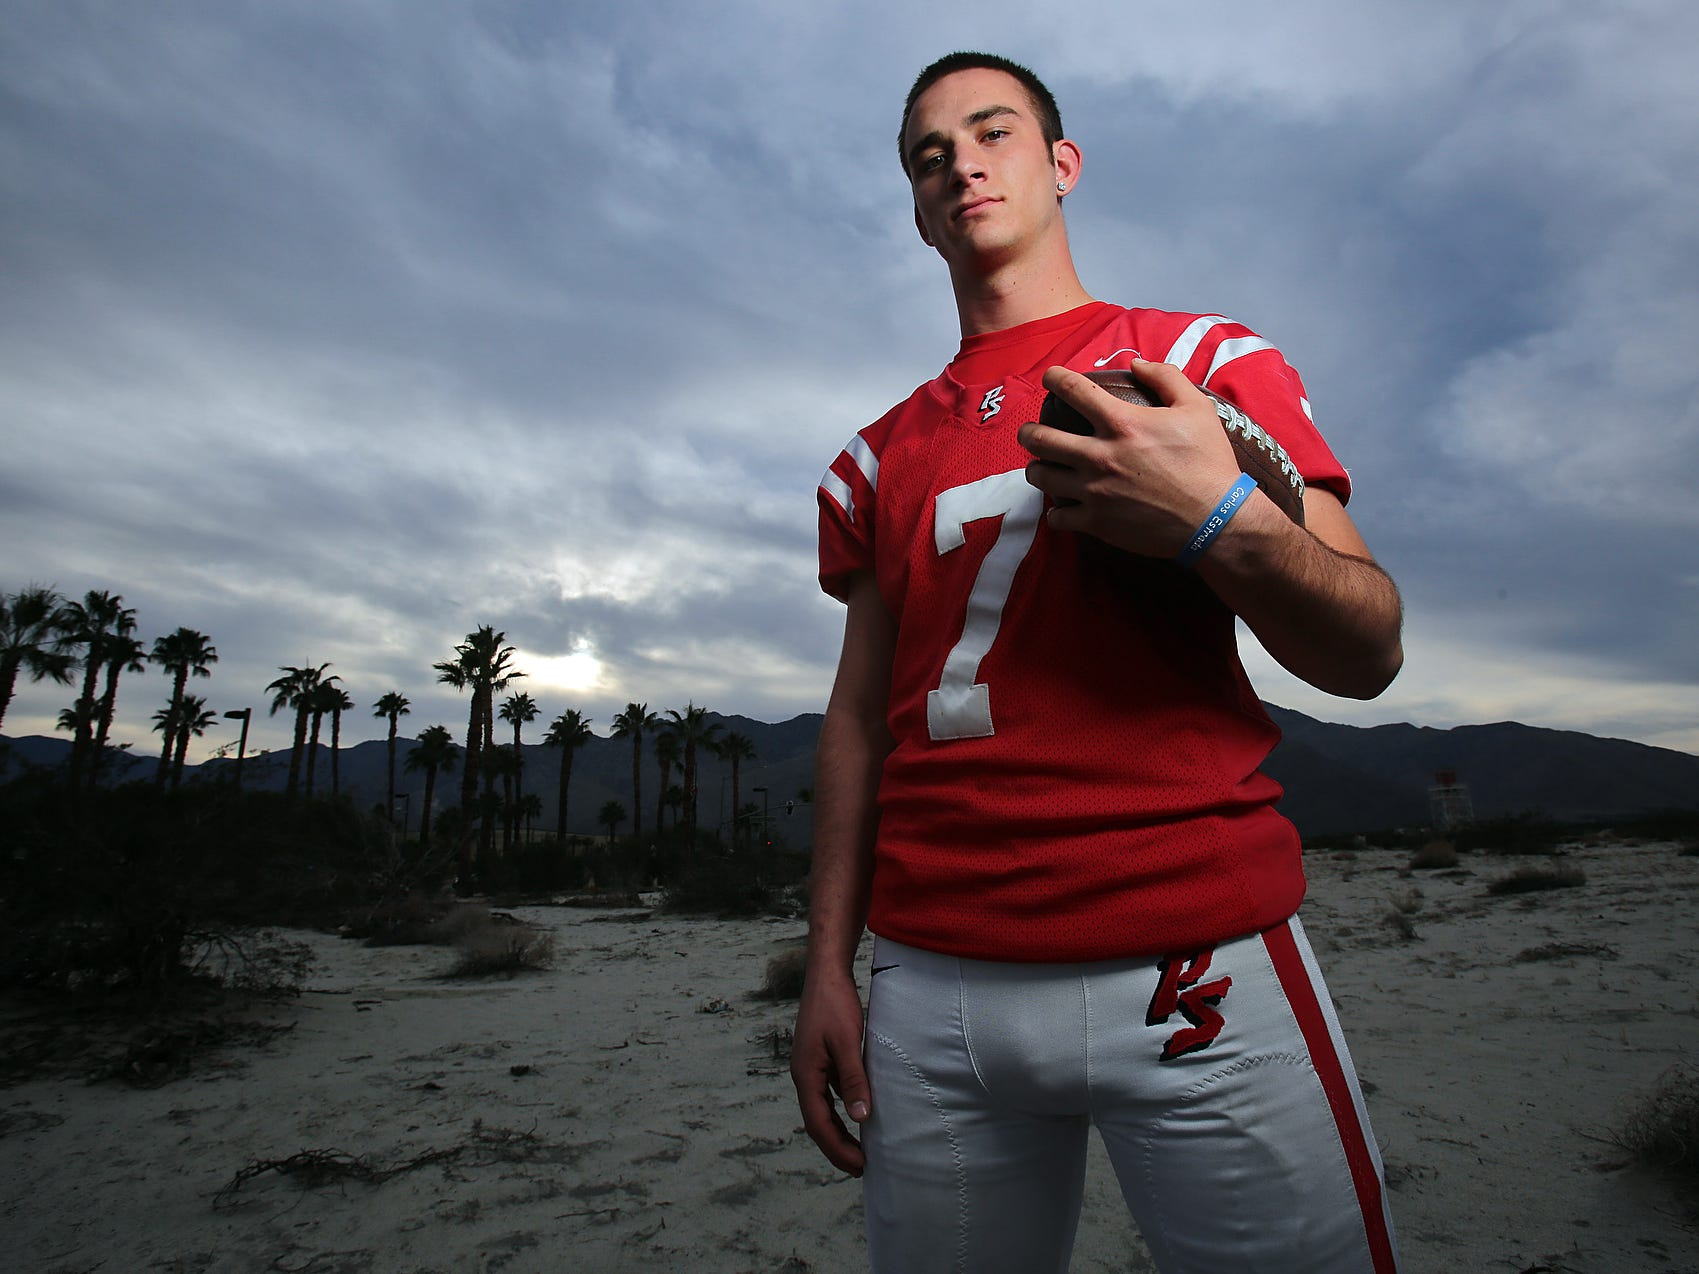 Palm Springs High School senior Riley Hagar played on the offense, defense, and as a punter on special teams this year for the champion Indians.